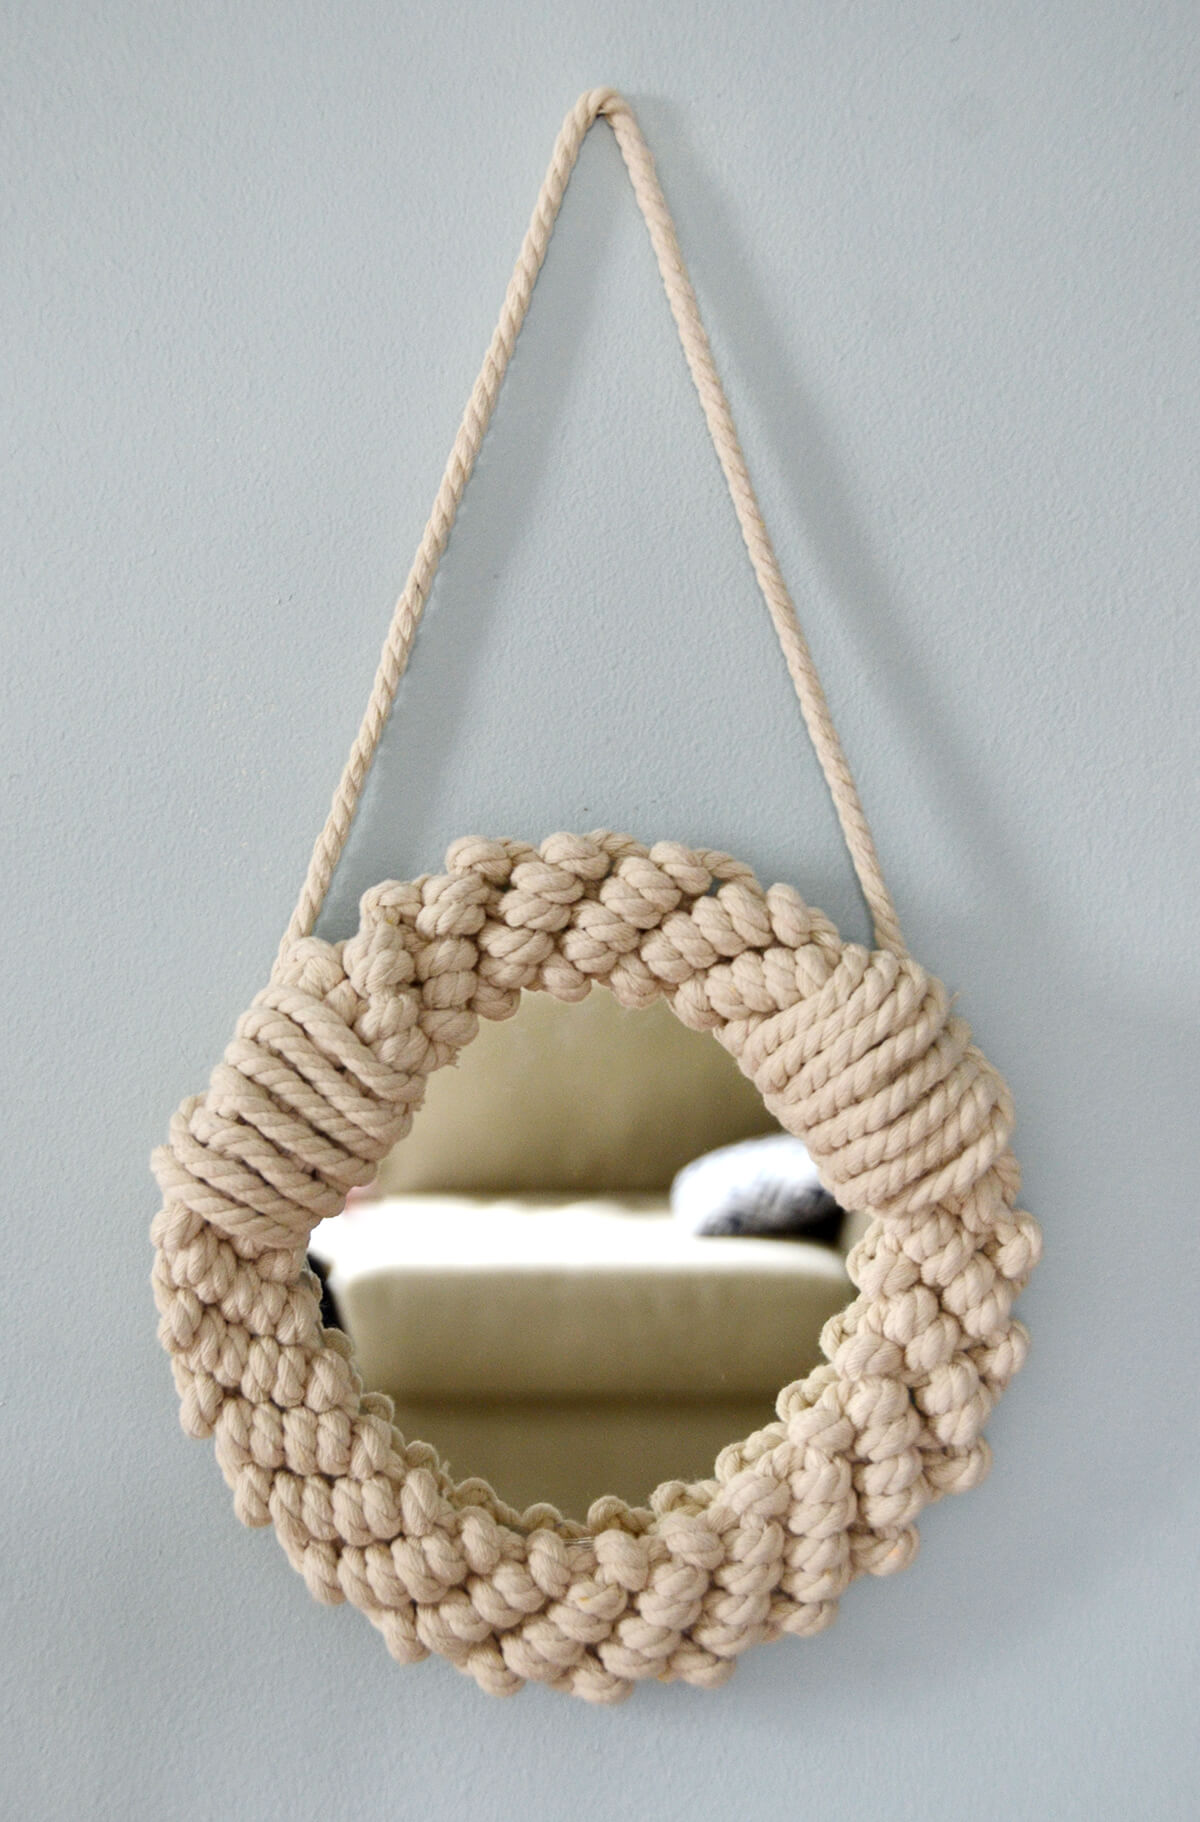 A Small Porthole Mirror Knitted with Rope